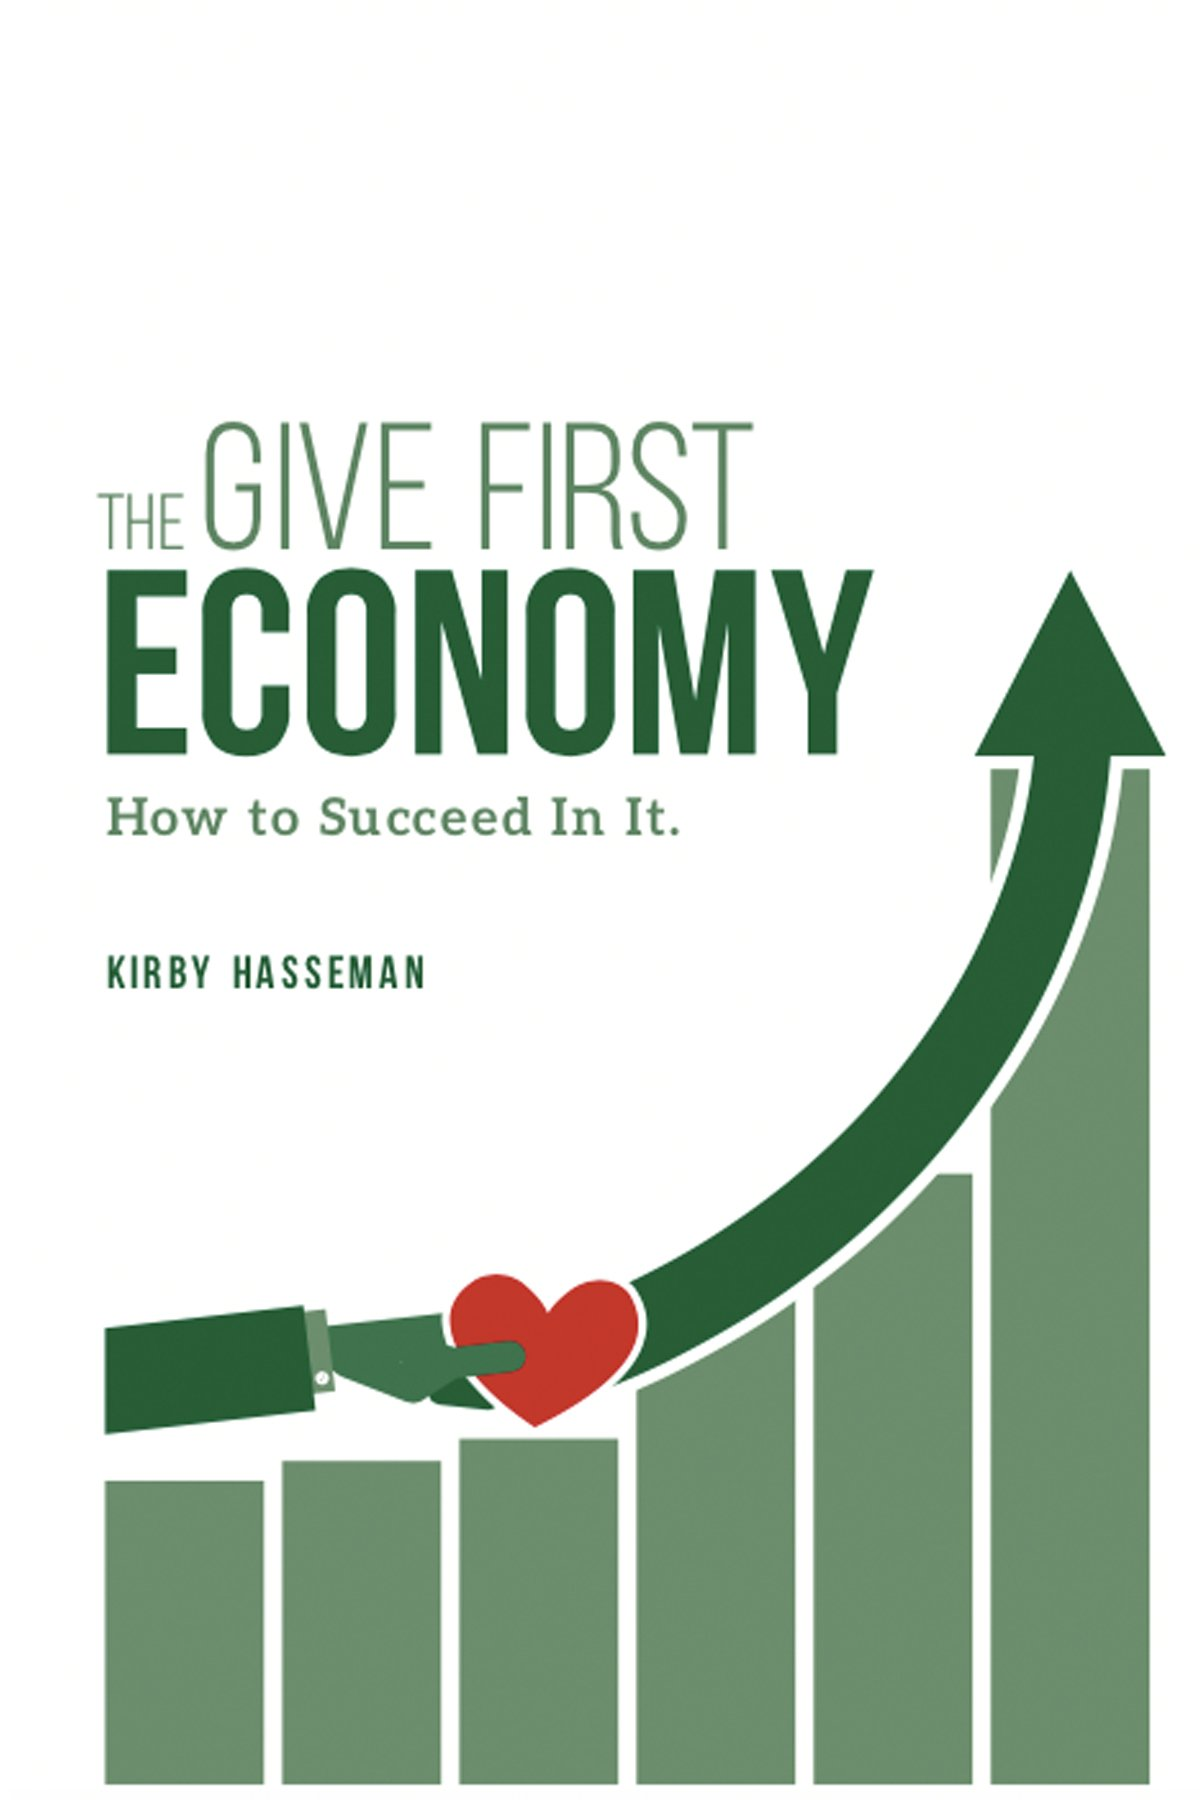 the give first economy book